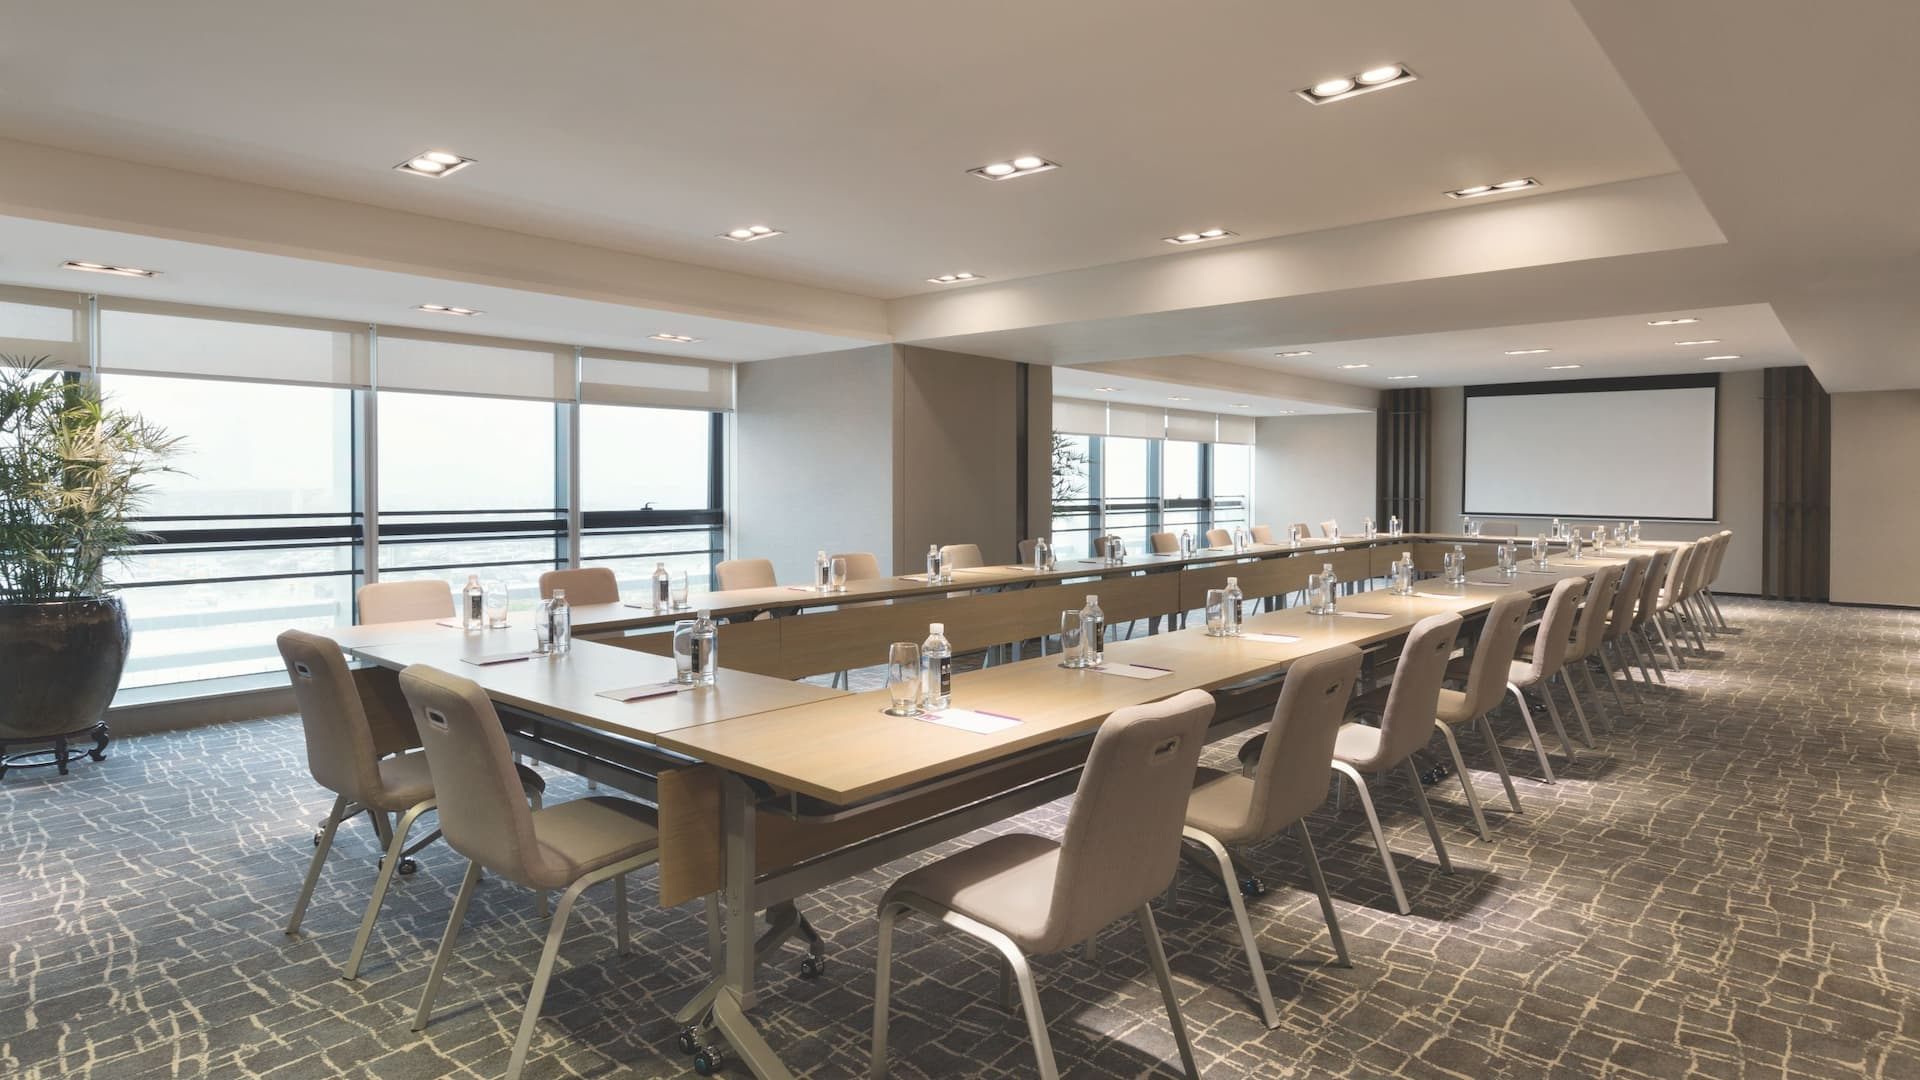 Hyatt House Shenzhen Airport Meeting Room Hollow Square